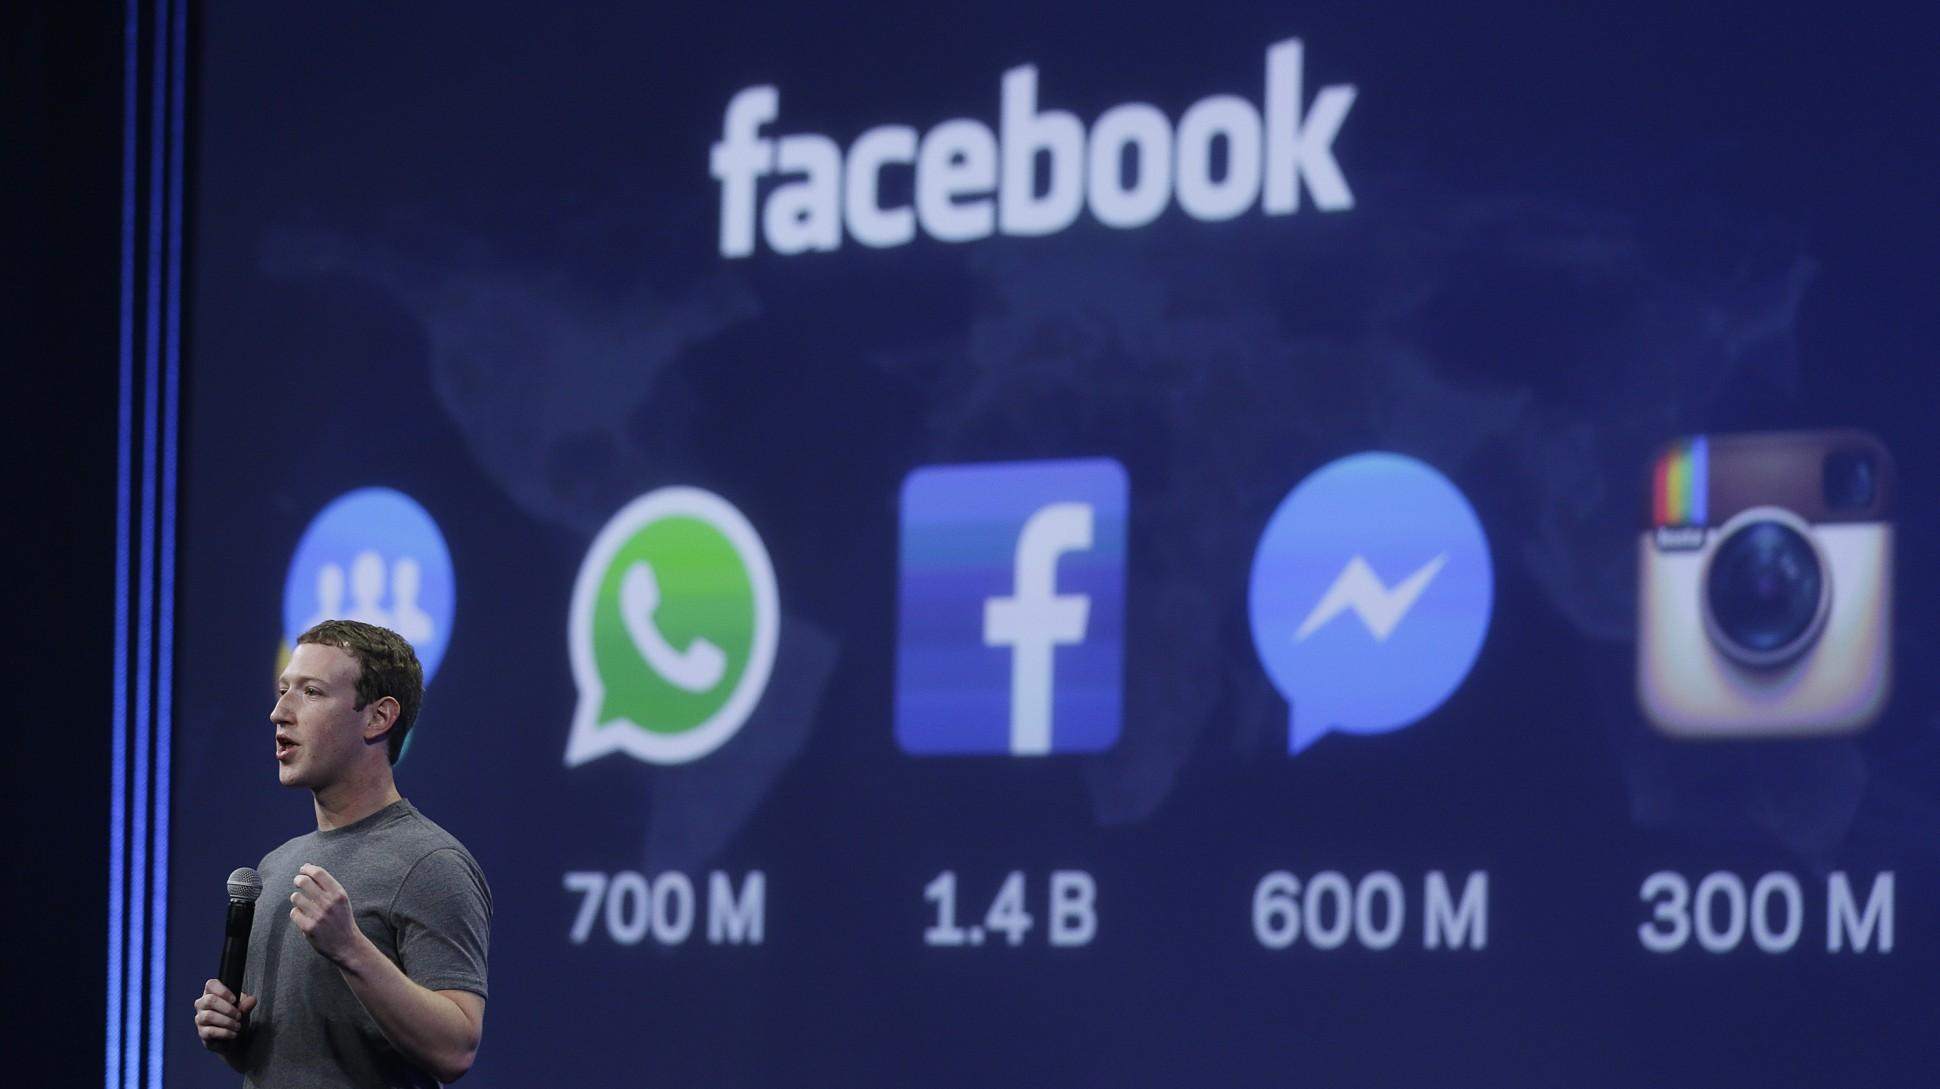 Facebook reportedly builds China filter as hurdles linger